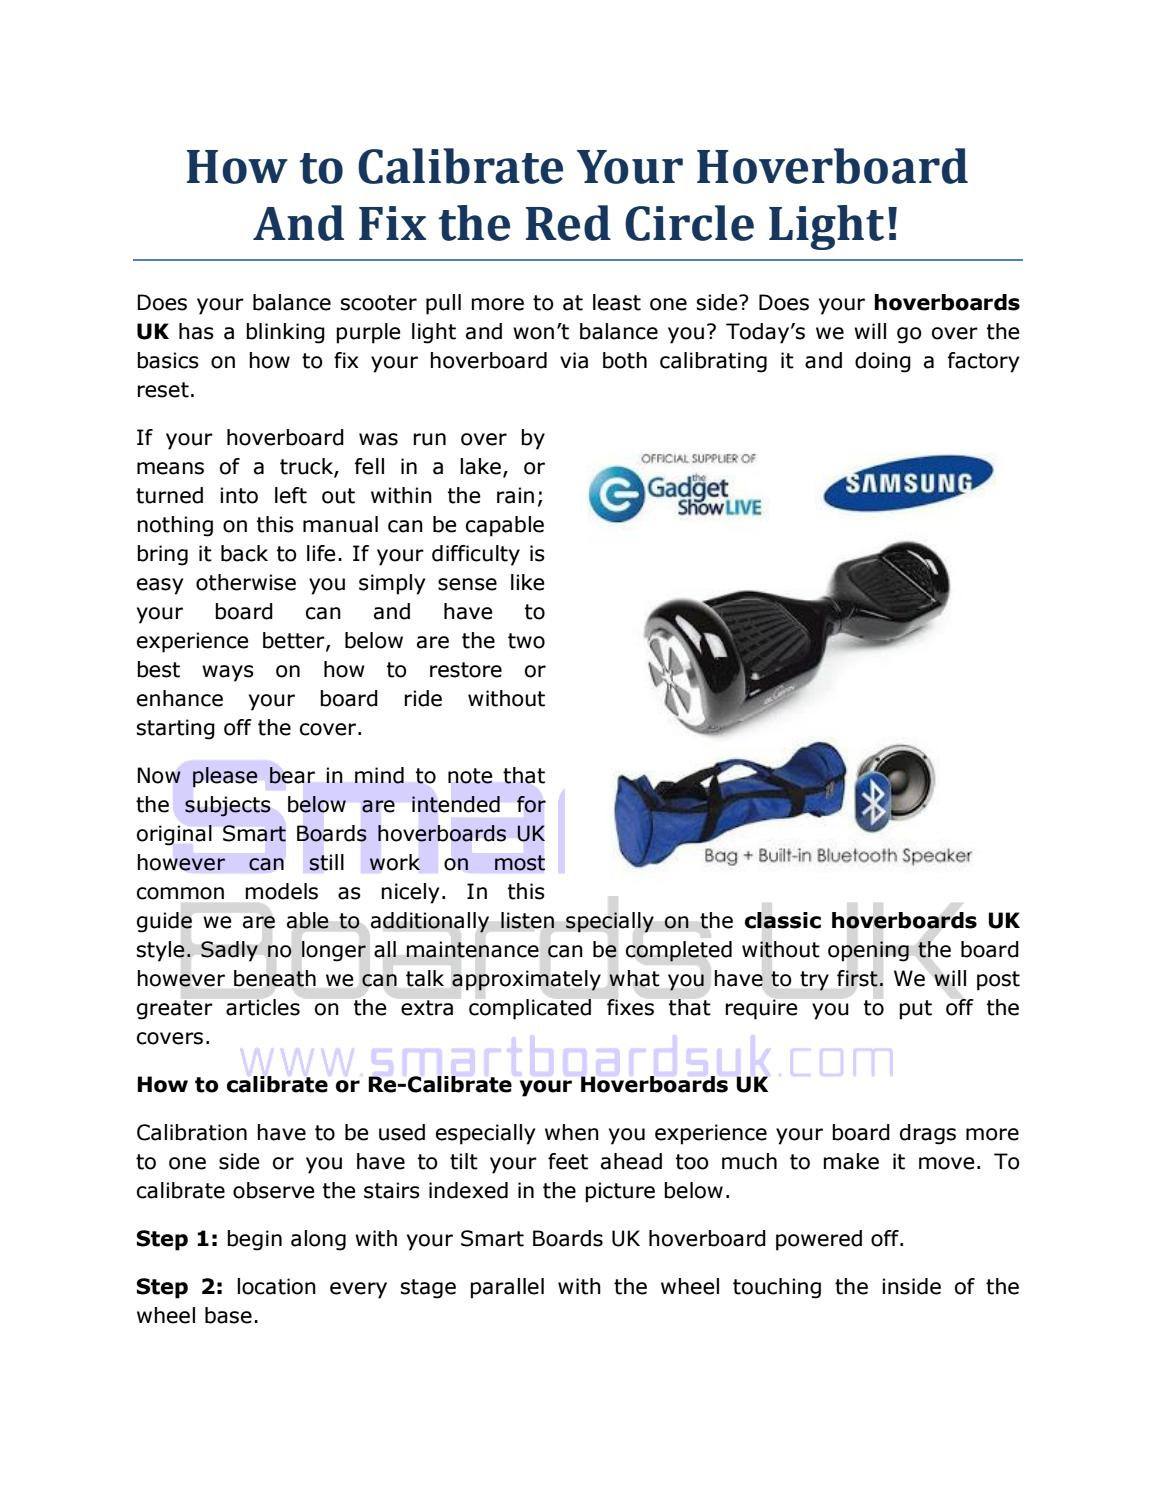 How To Calibrate Your Hoverboard And Fix The Red Circle Light By Go Balance Board Smart Boards Uk Issuu